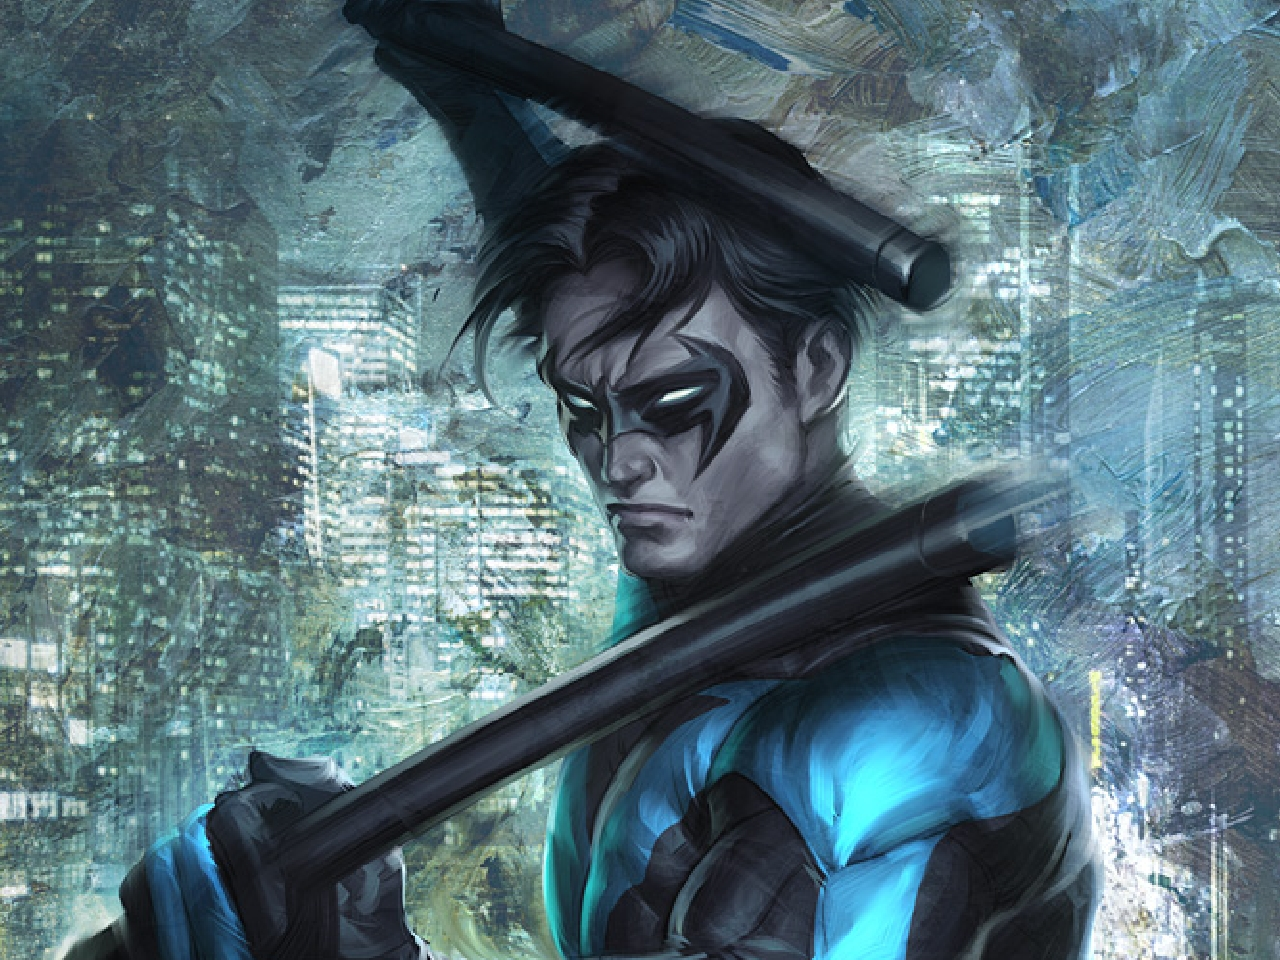 Nightwing Computer Wallpapers Desktop Backgrounds 1280x960 ID 1280x960